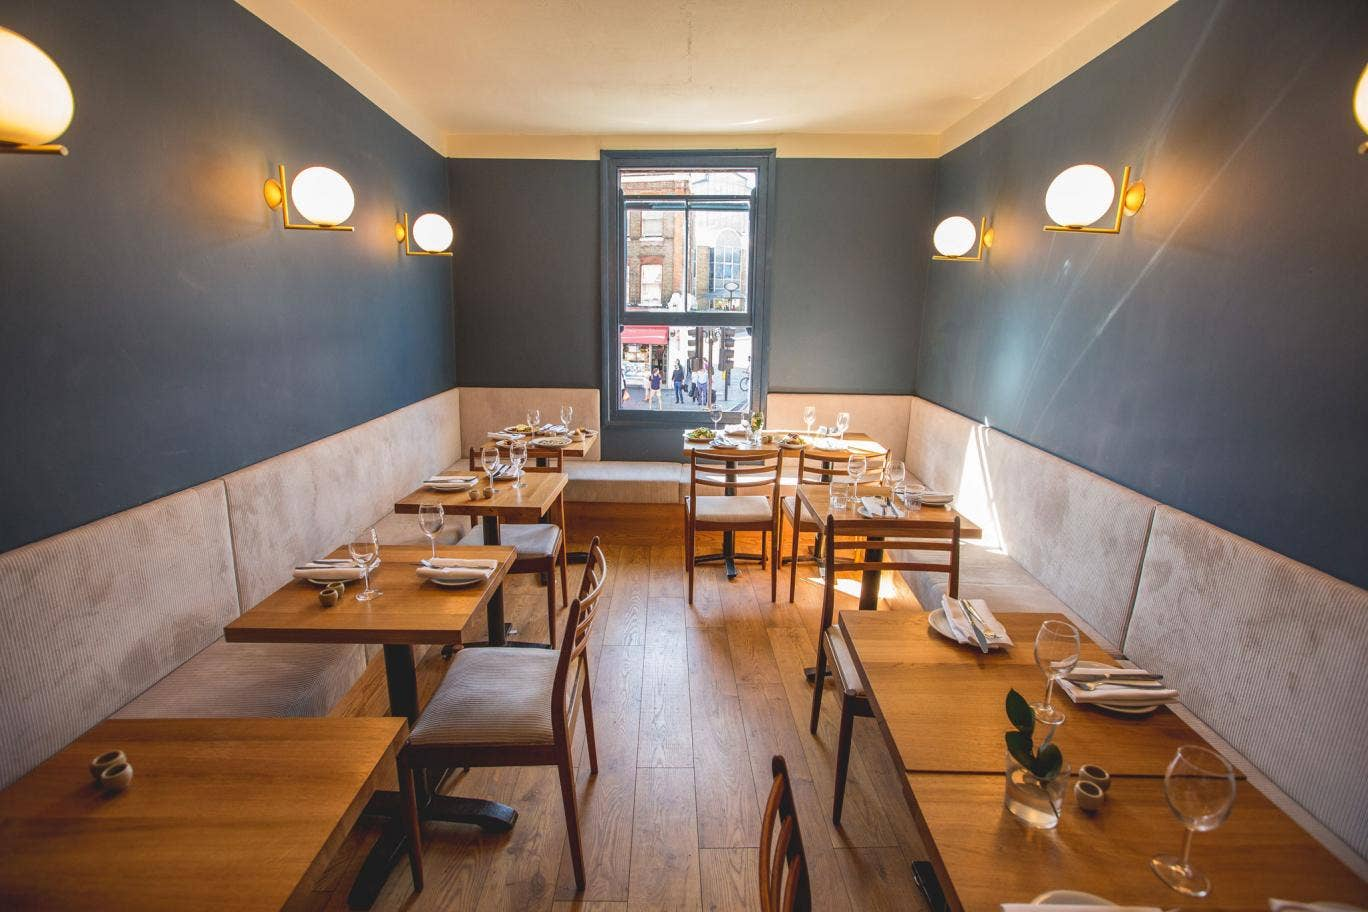 Oldroyd Restaurant Review 39 A Dining Space Is Almost As Tiny As The Kitchen But A Big Future